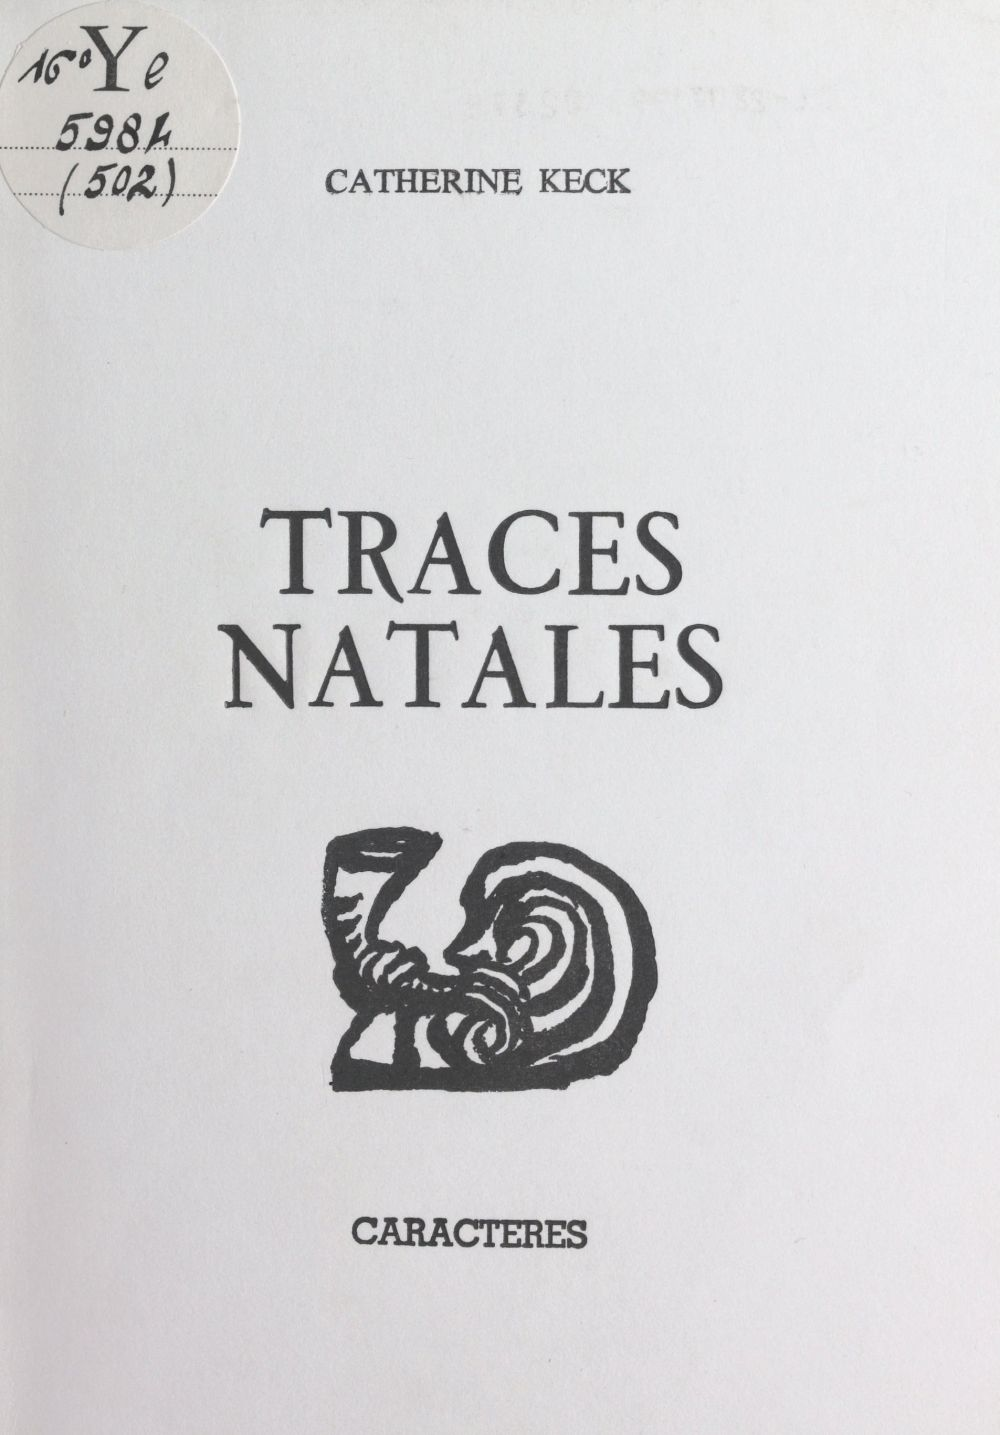 Traces natales